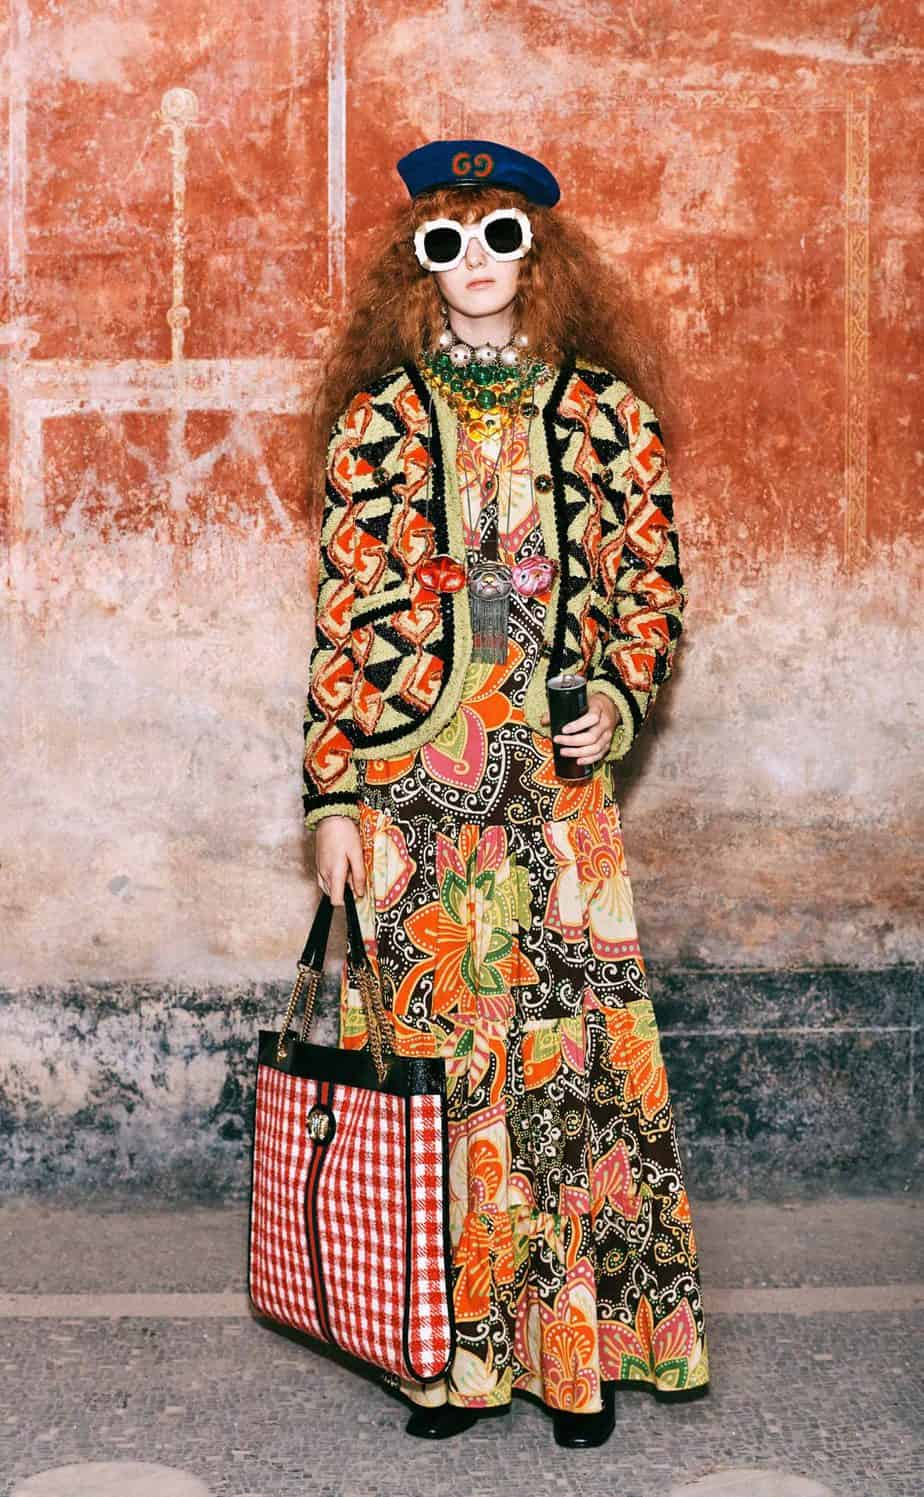 GUCCI, FALL 2019. WOMEN'S FASHION, Photographer Harmony Korine, Art Director, Christopher Simmonds - 5